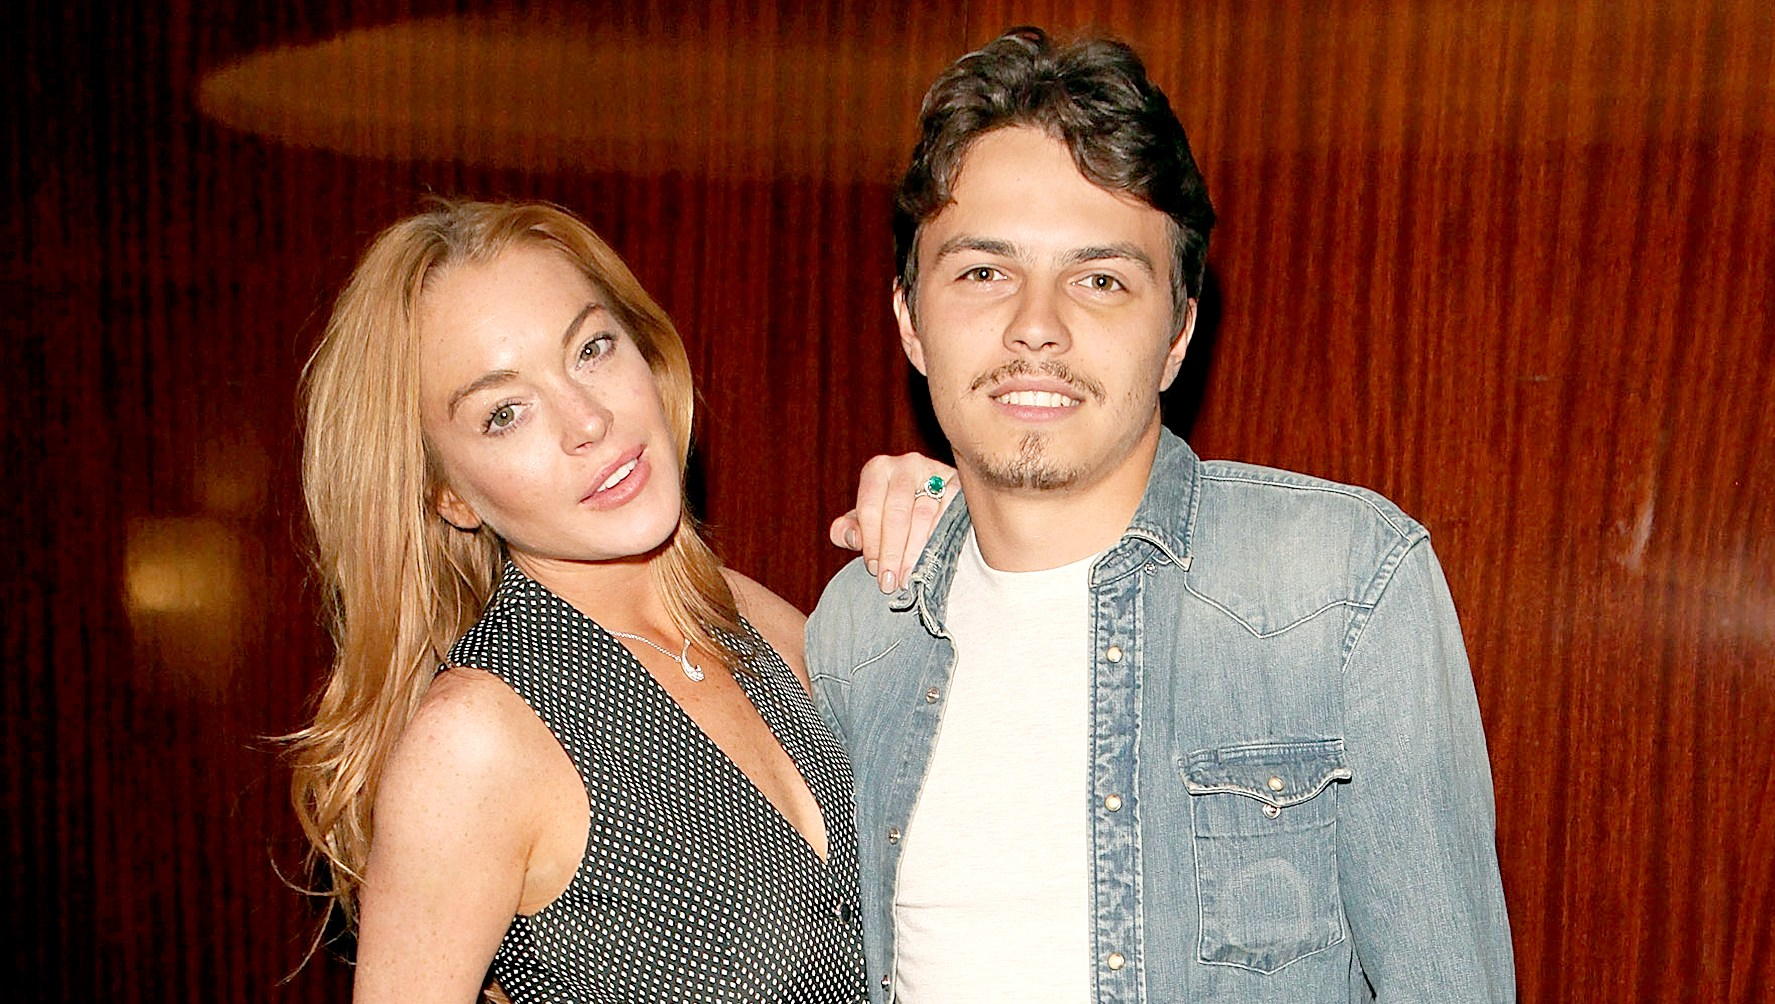 Lindsay Lohan and Egor Tarabasov abuse claim